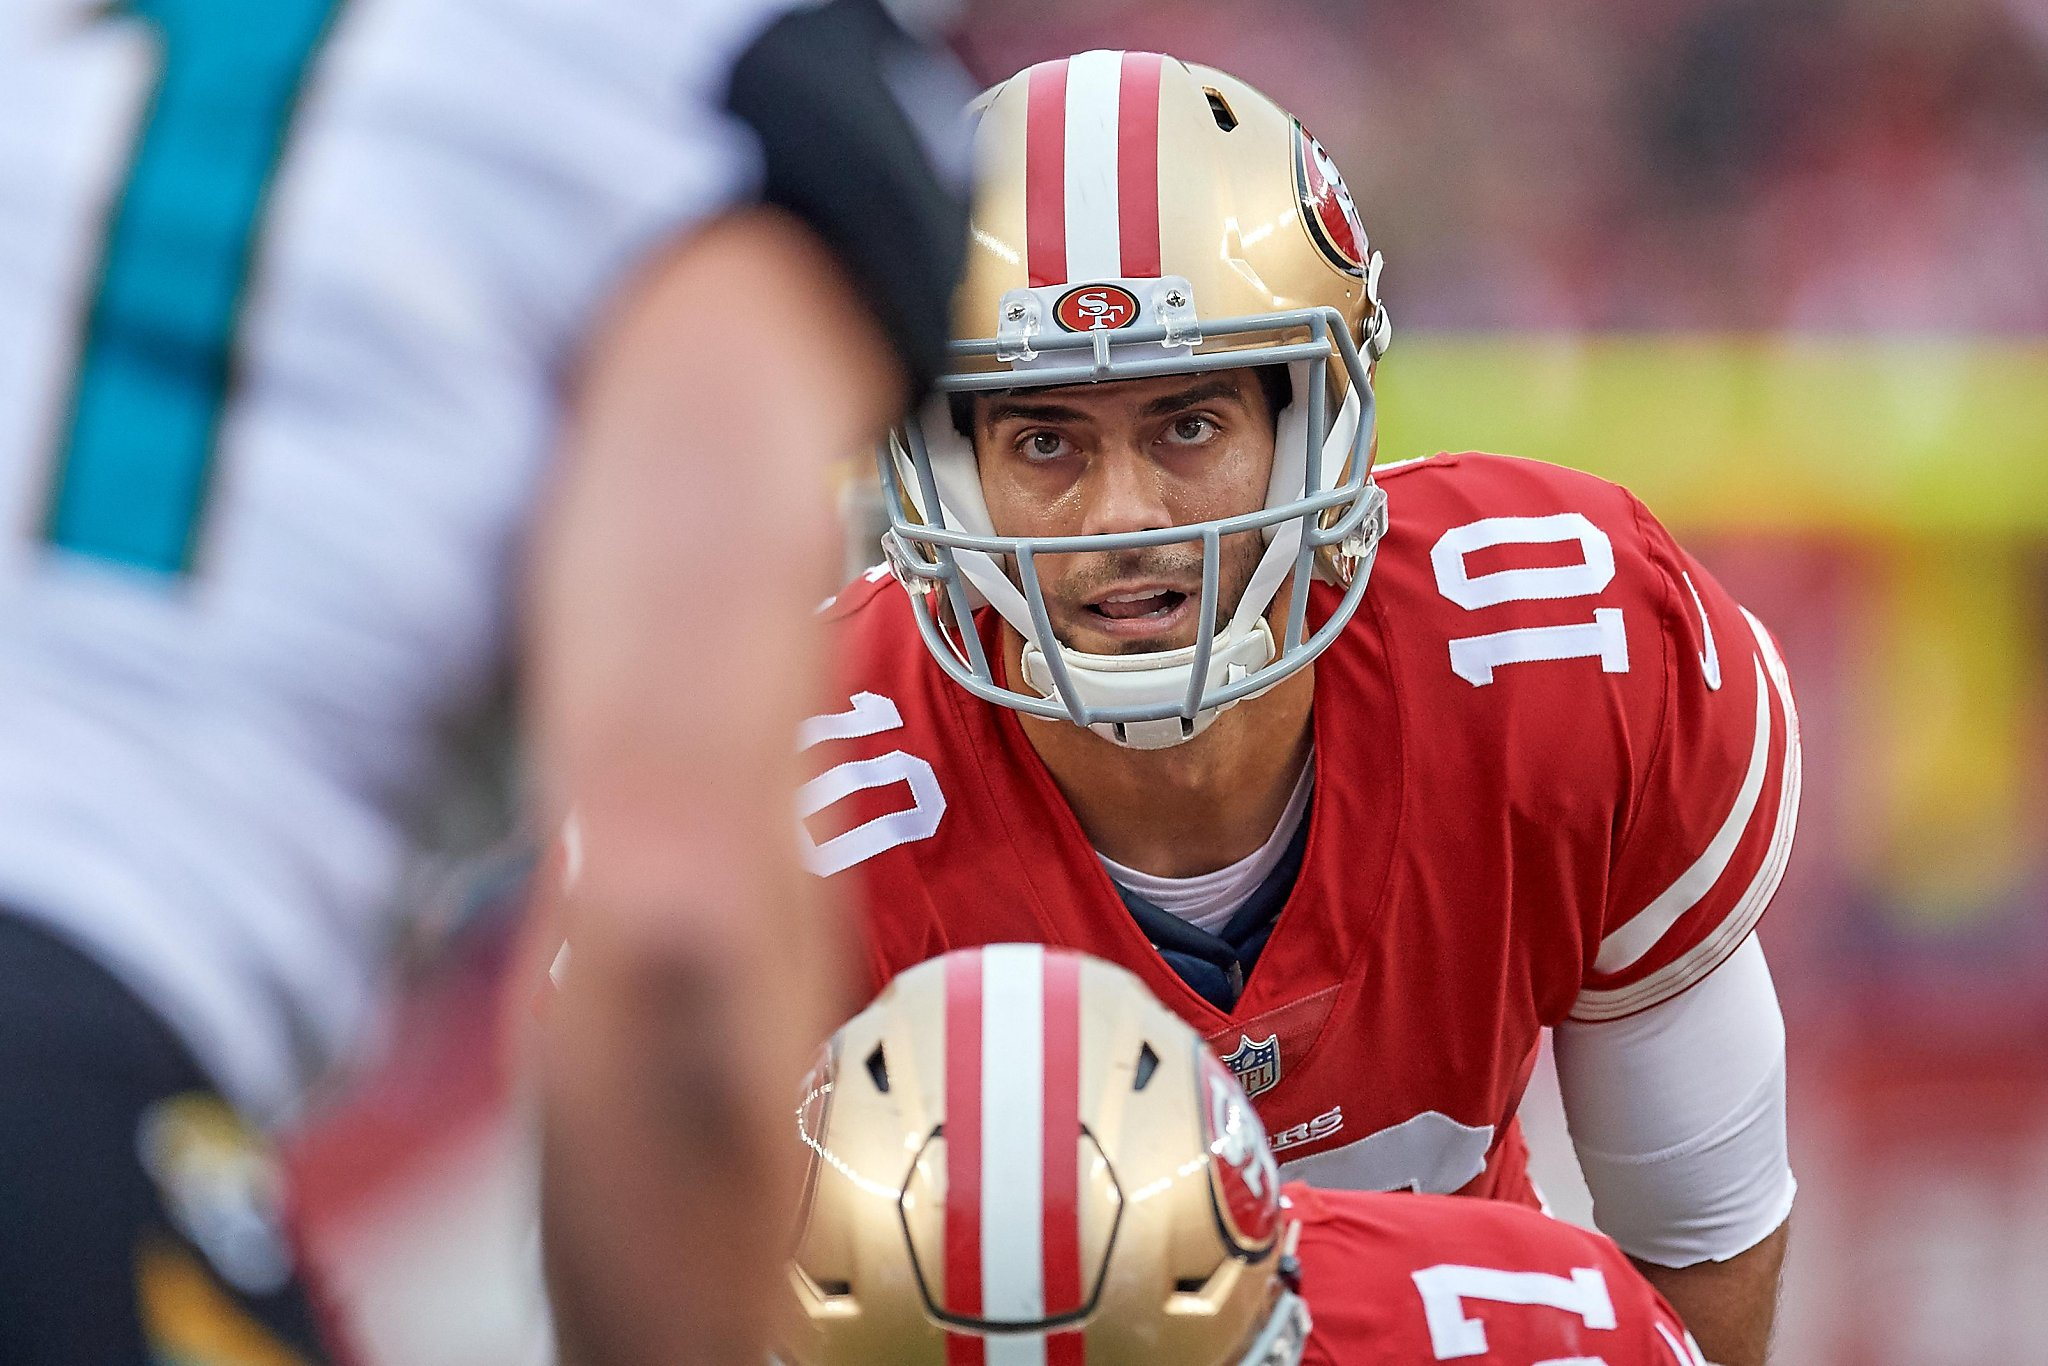 49ers 2018 Schedule Garoppolo Vs Rodgers In Prime Time